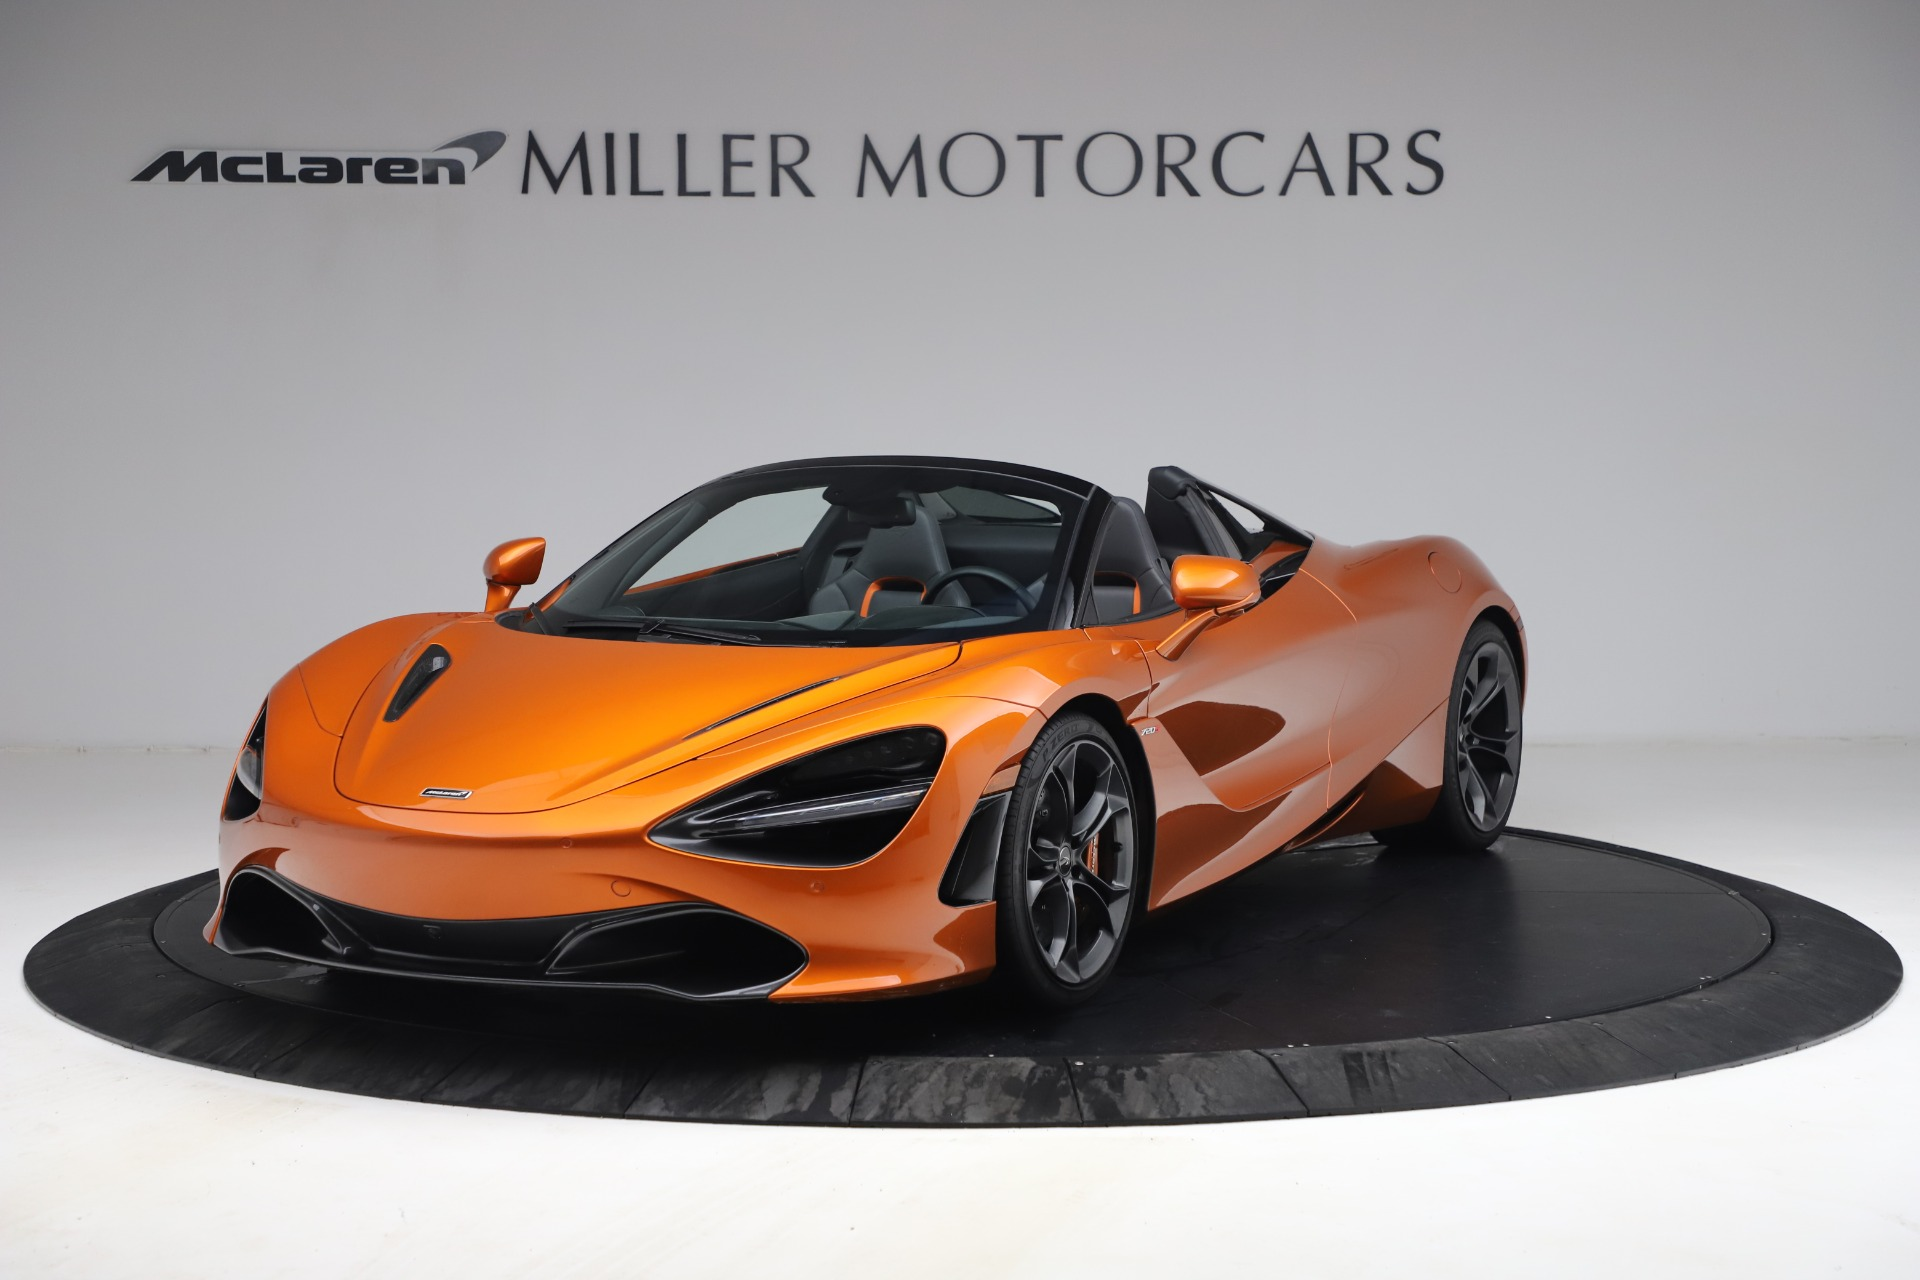 Used 2020 McLaren 720S Spider for sale $335,900 at Bugatti of Greenwich in Greenwich CT 06830 1